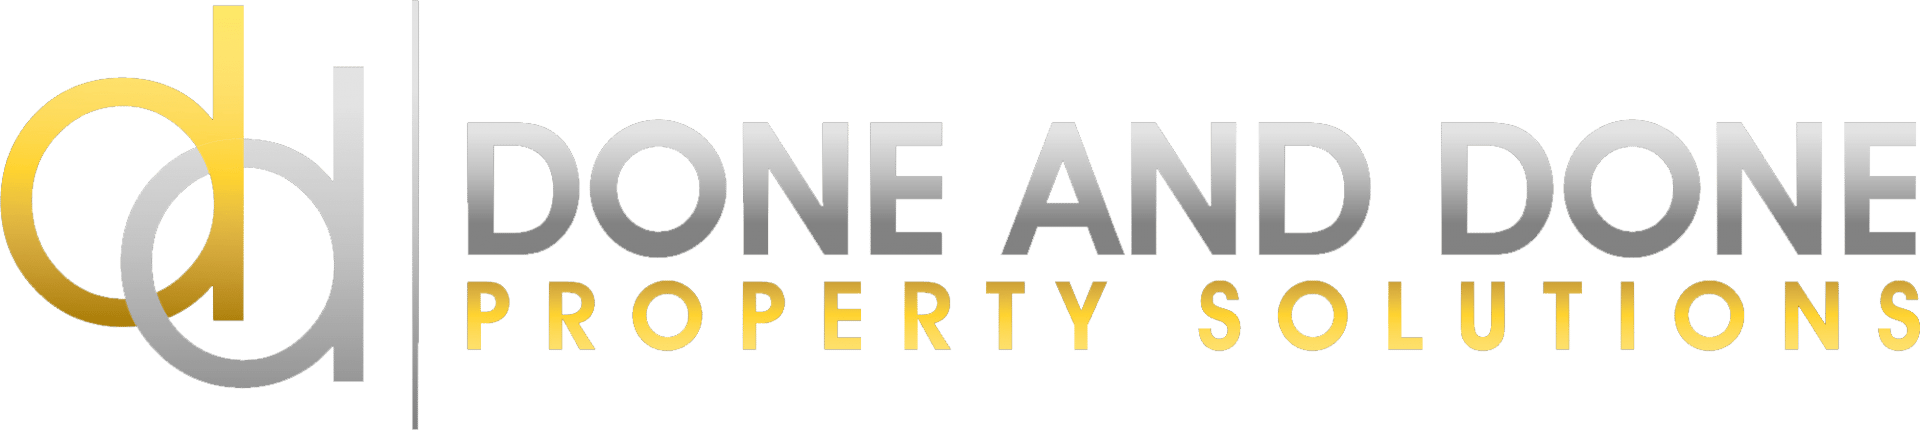 Done and Done Property Solutions  logo